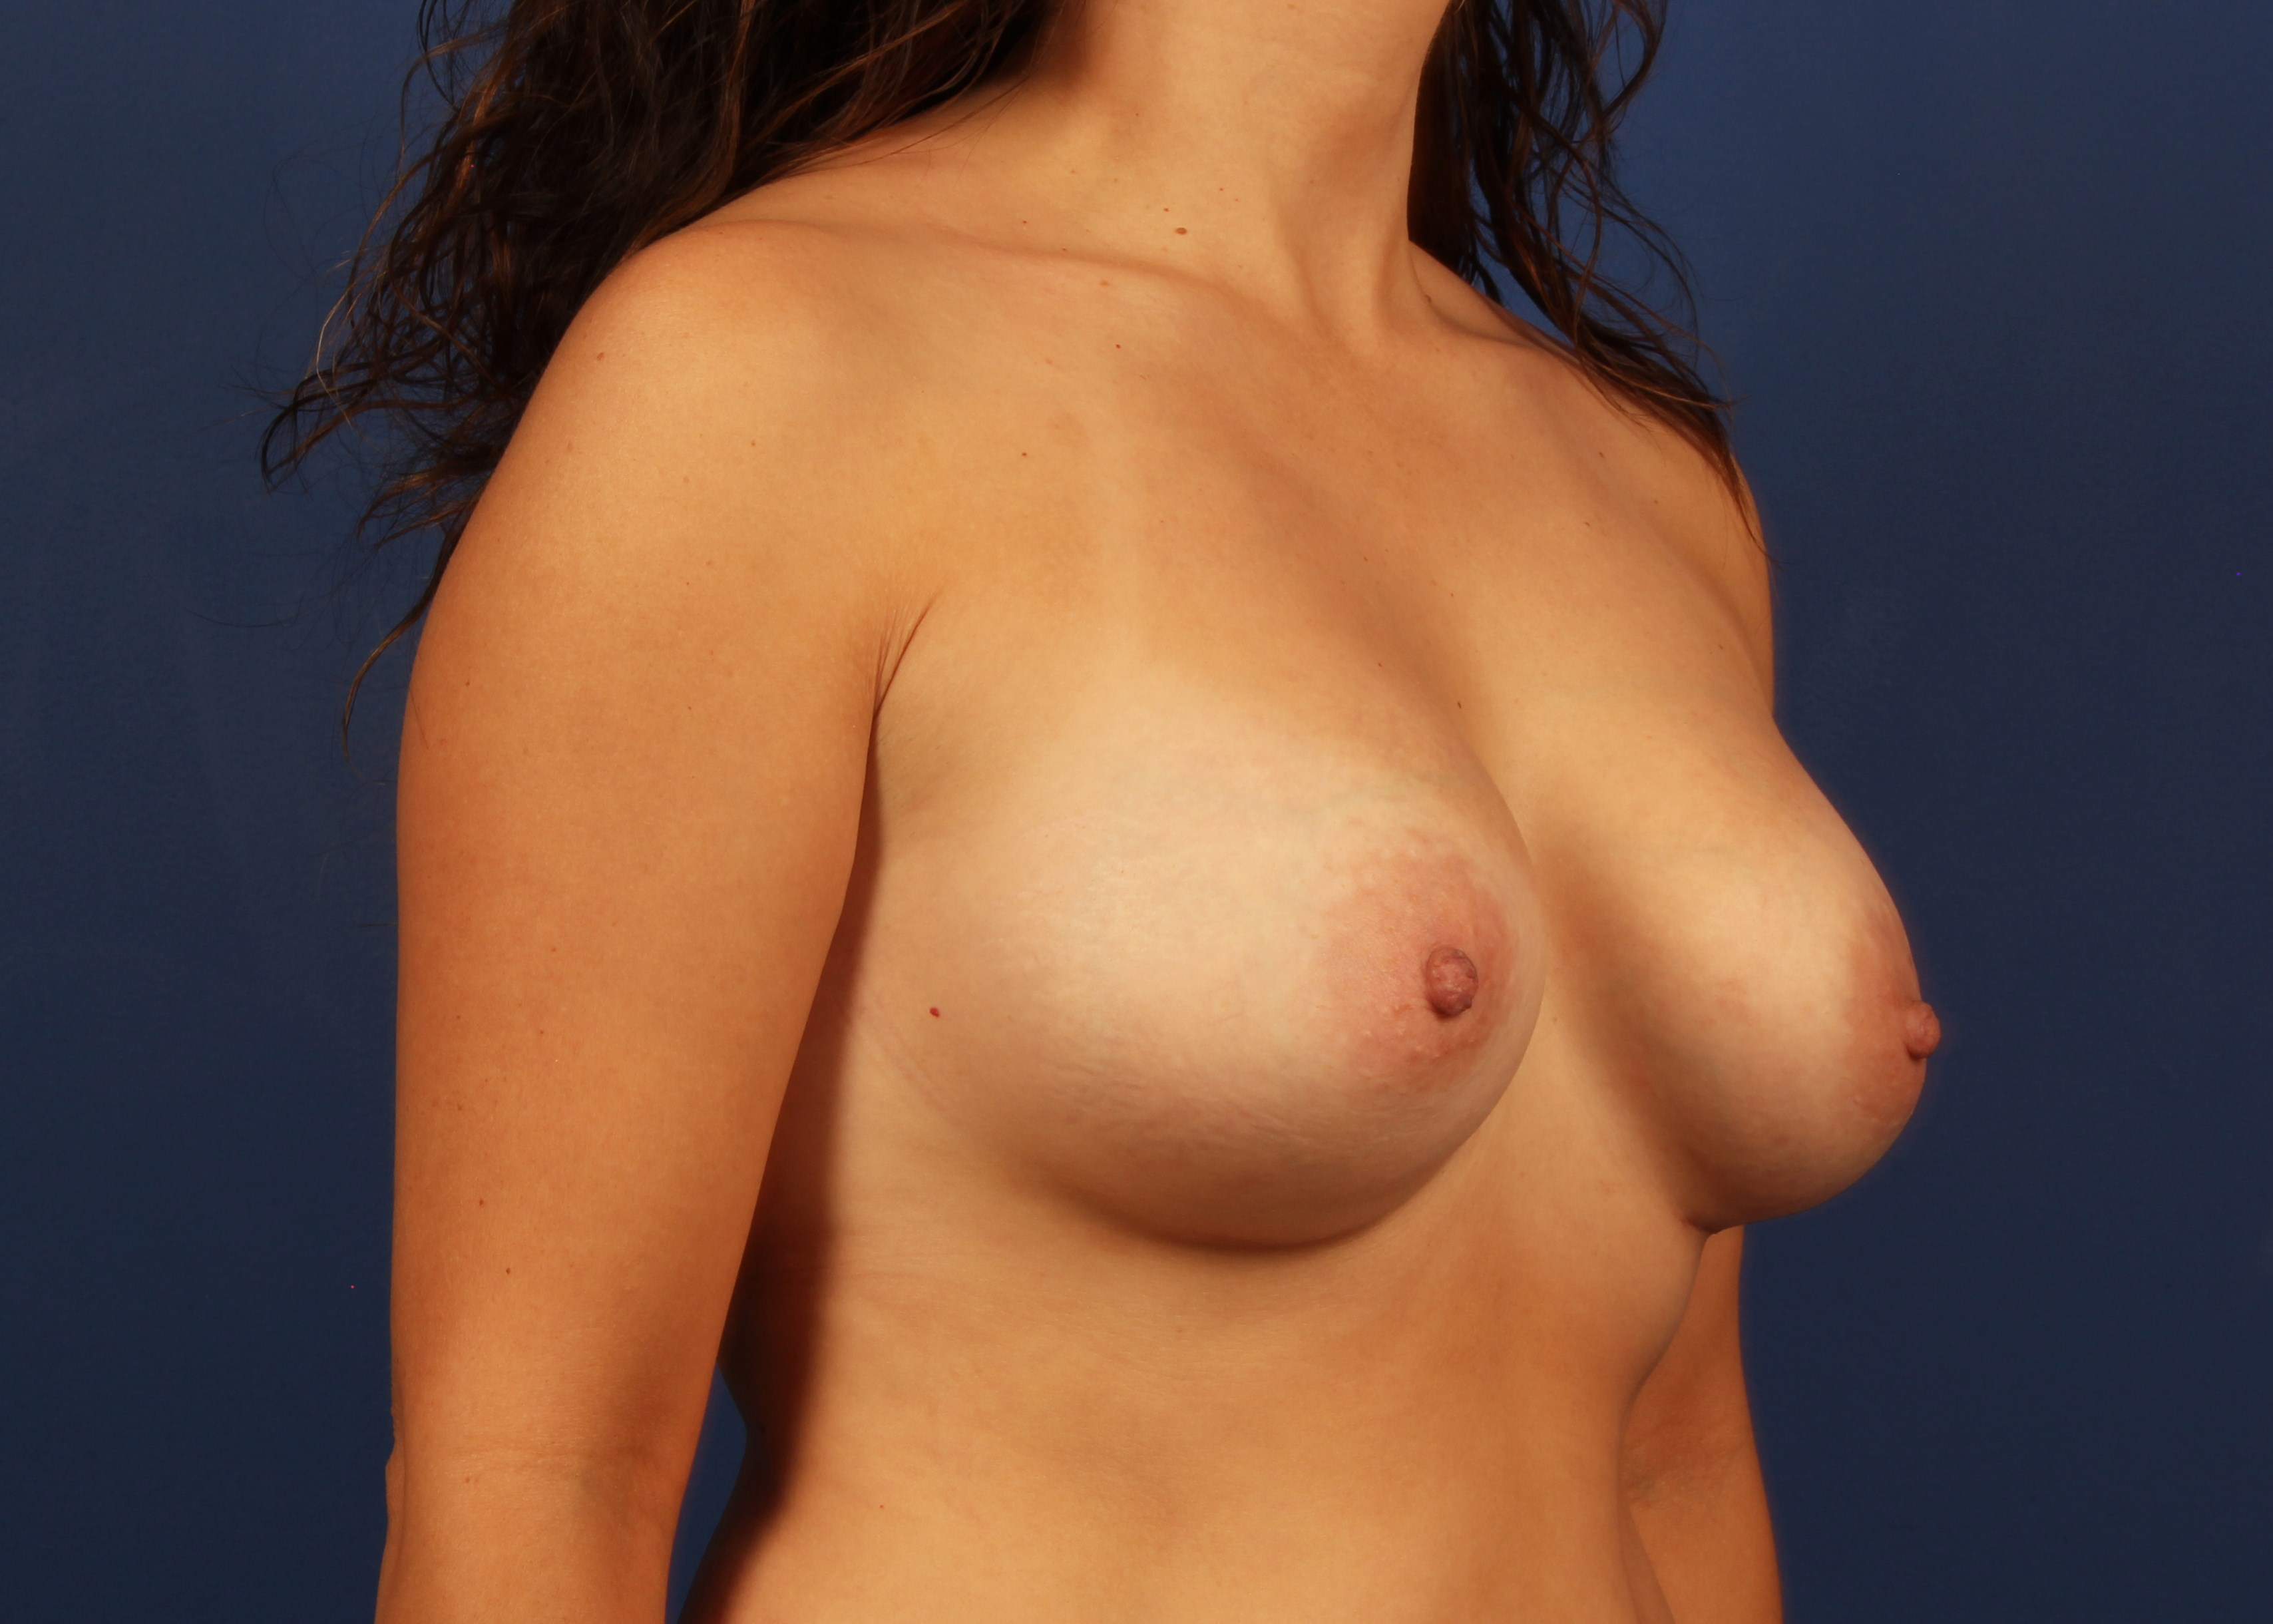 after breast implants Right Oblique View - Right Oblique View